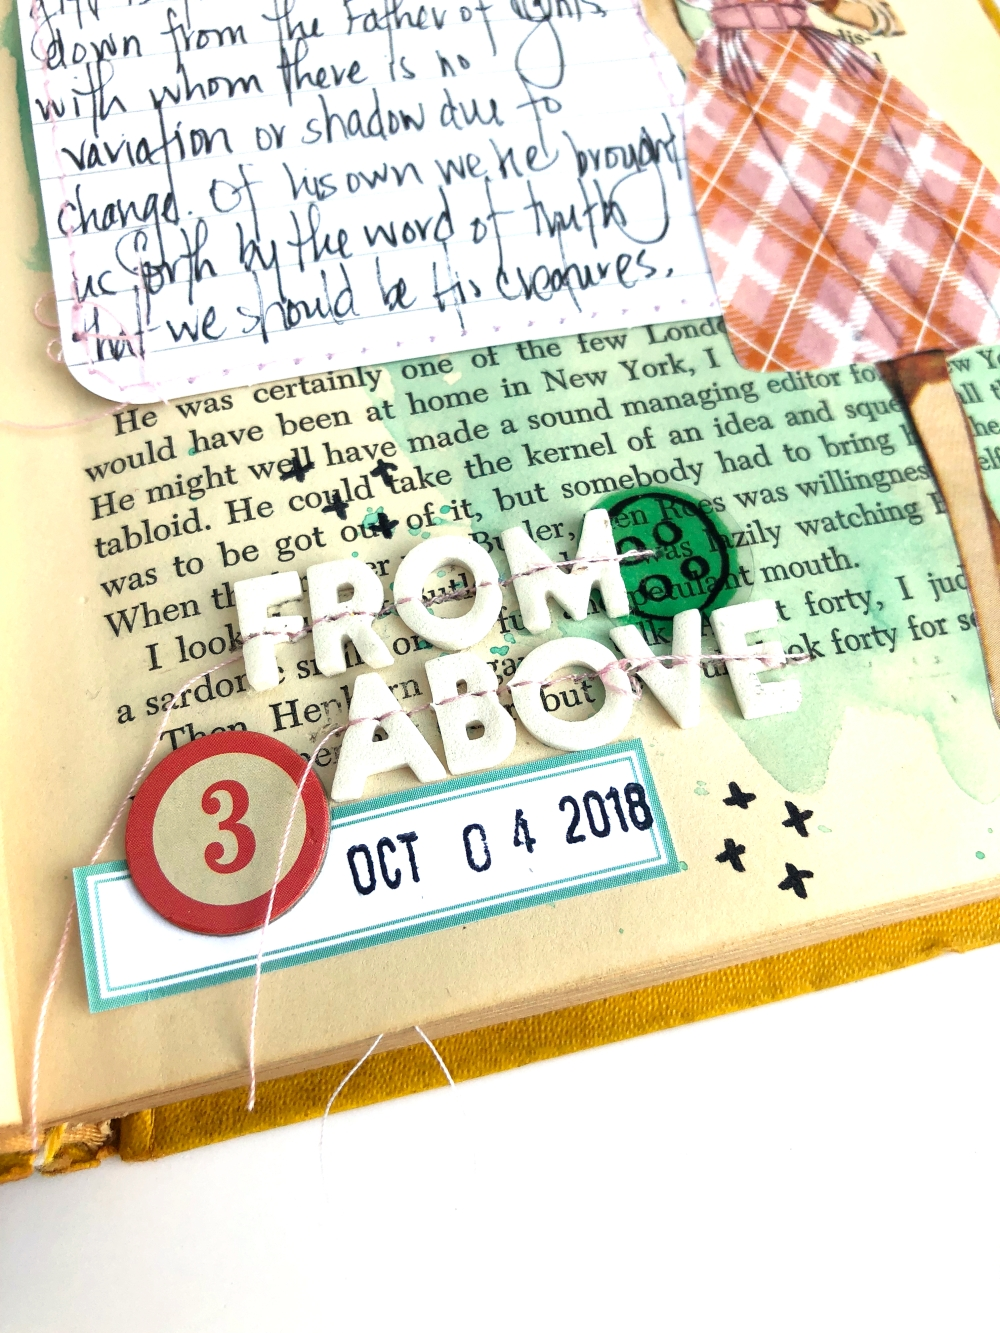 Lydia_TheLittleThings_AlteredBook_13.1